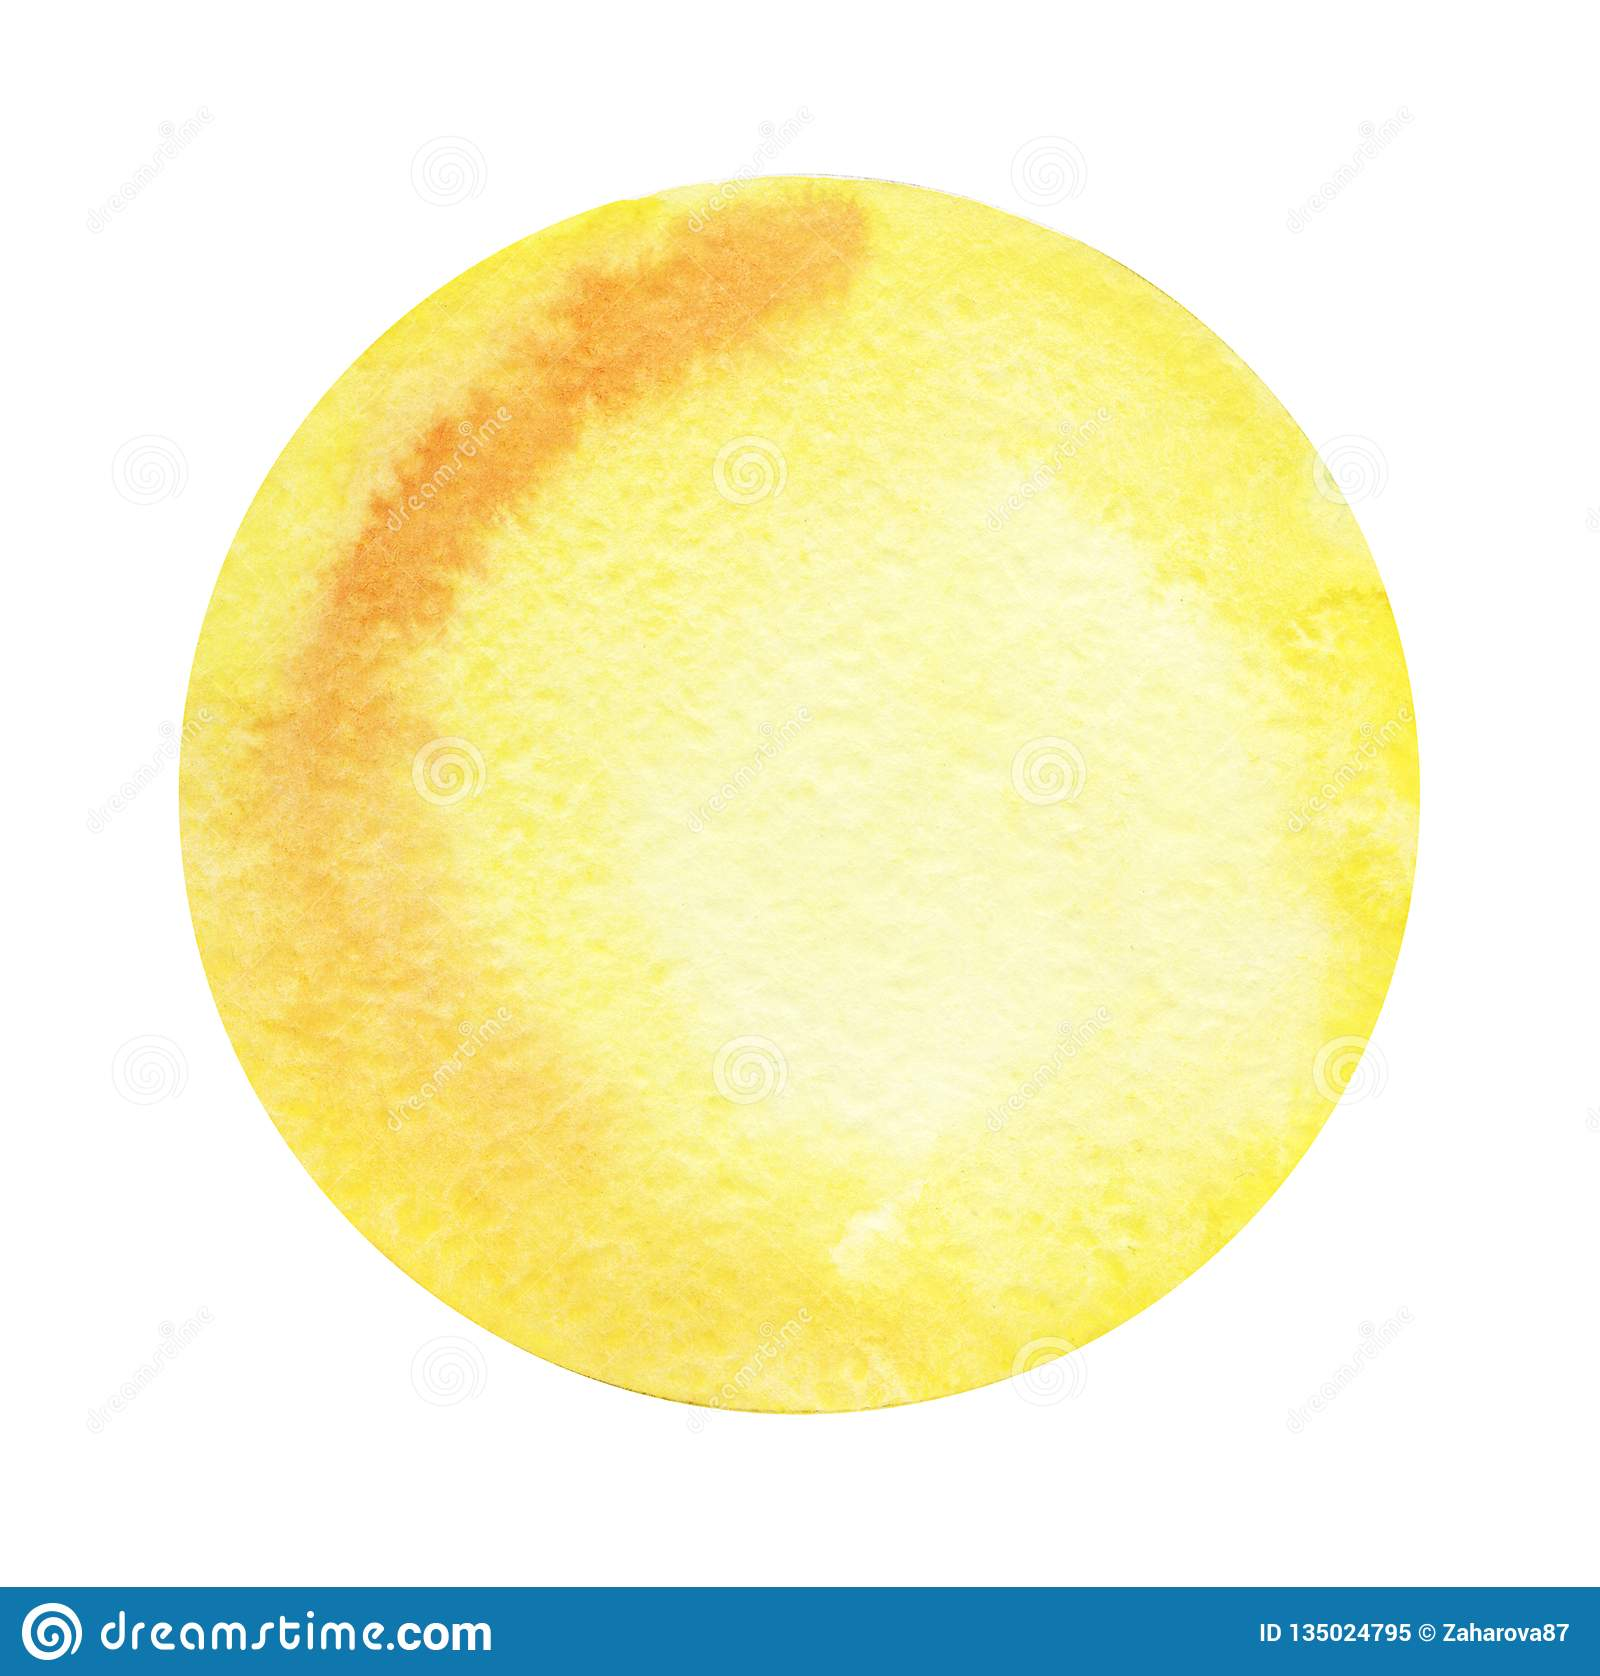 Round abstract watercolor background of yellow color with a radial gradient. Hand-drawn paper illustration